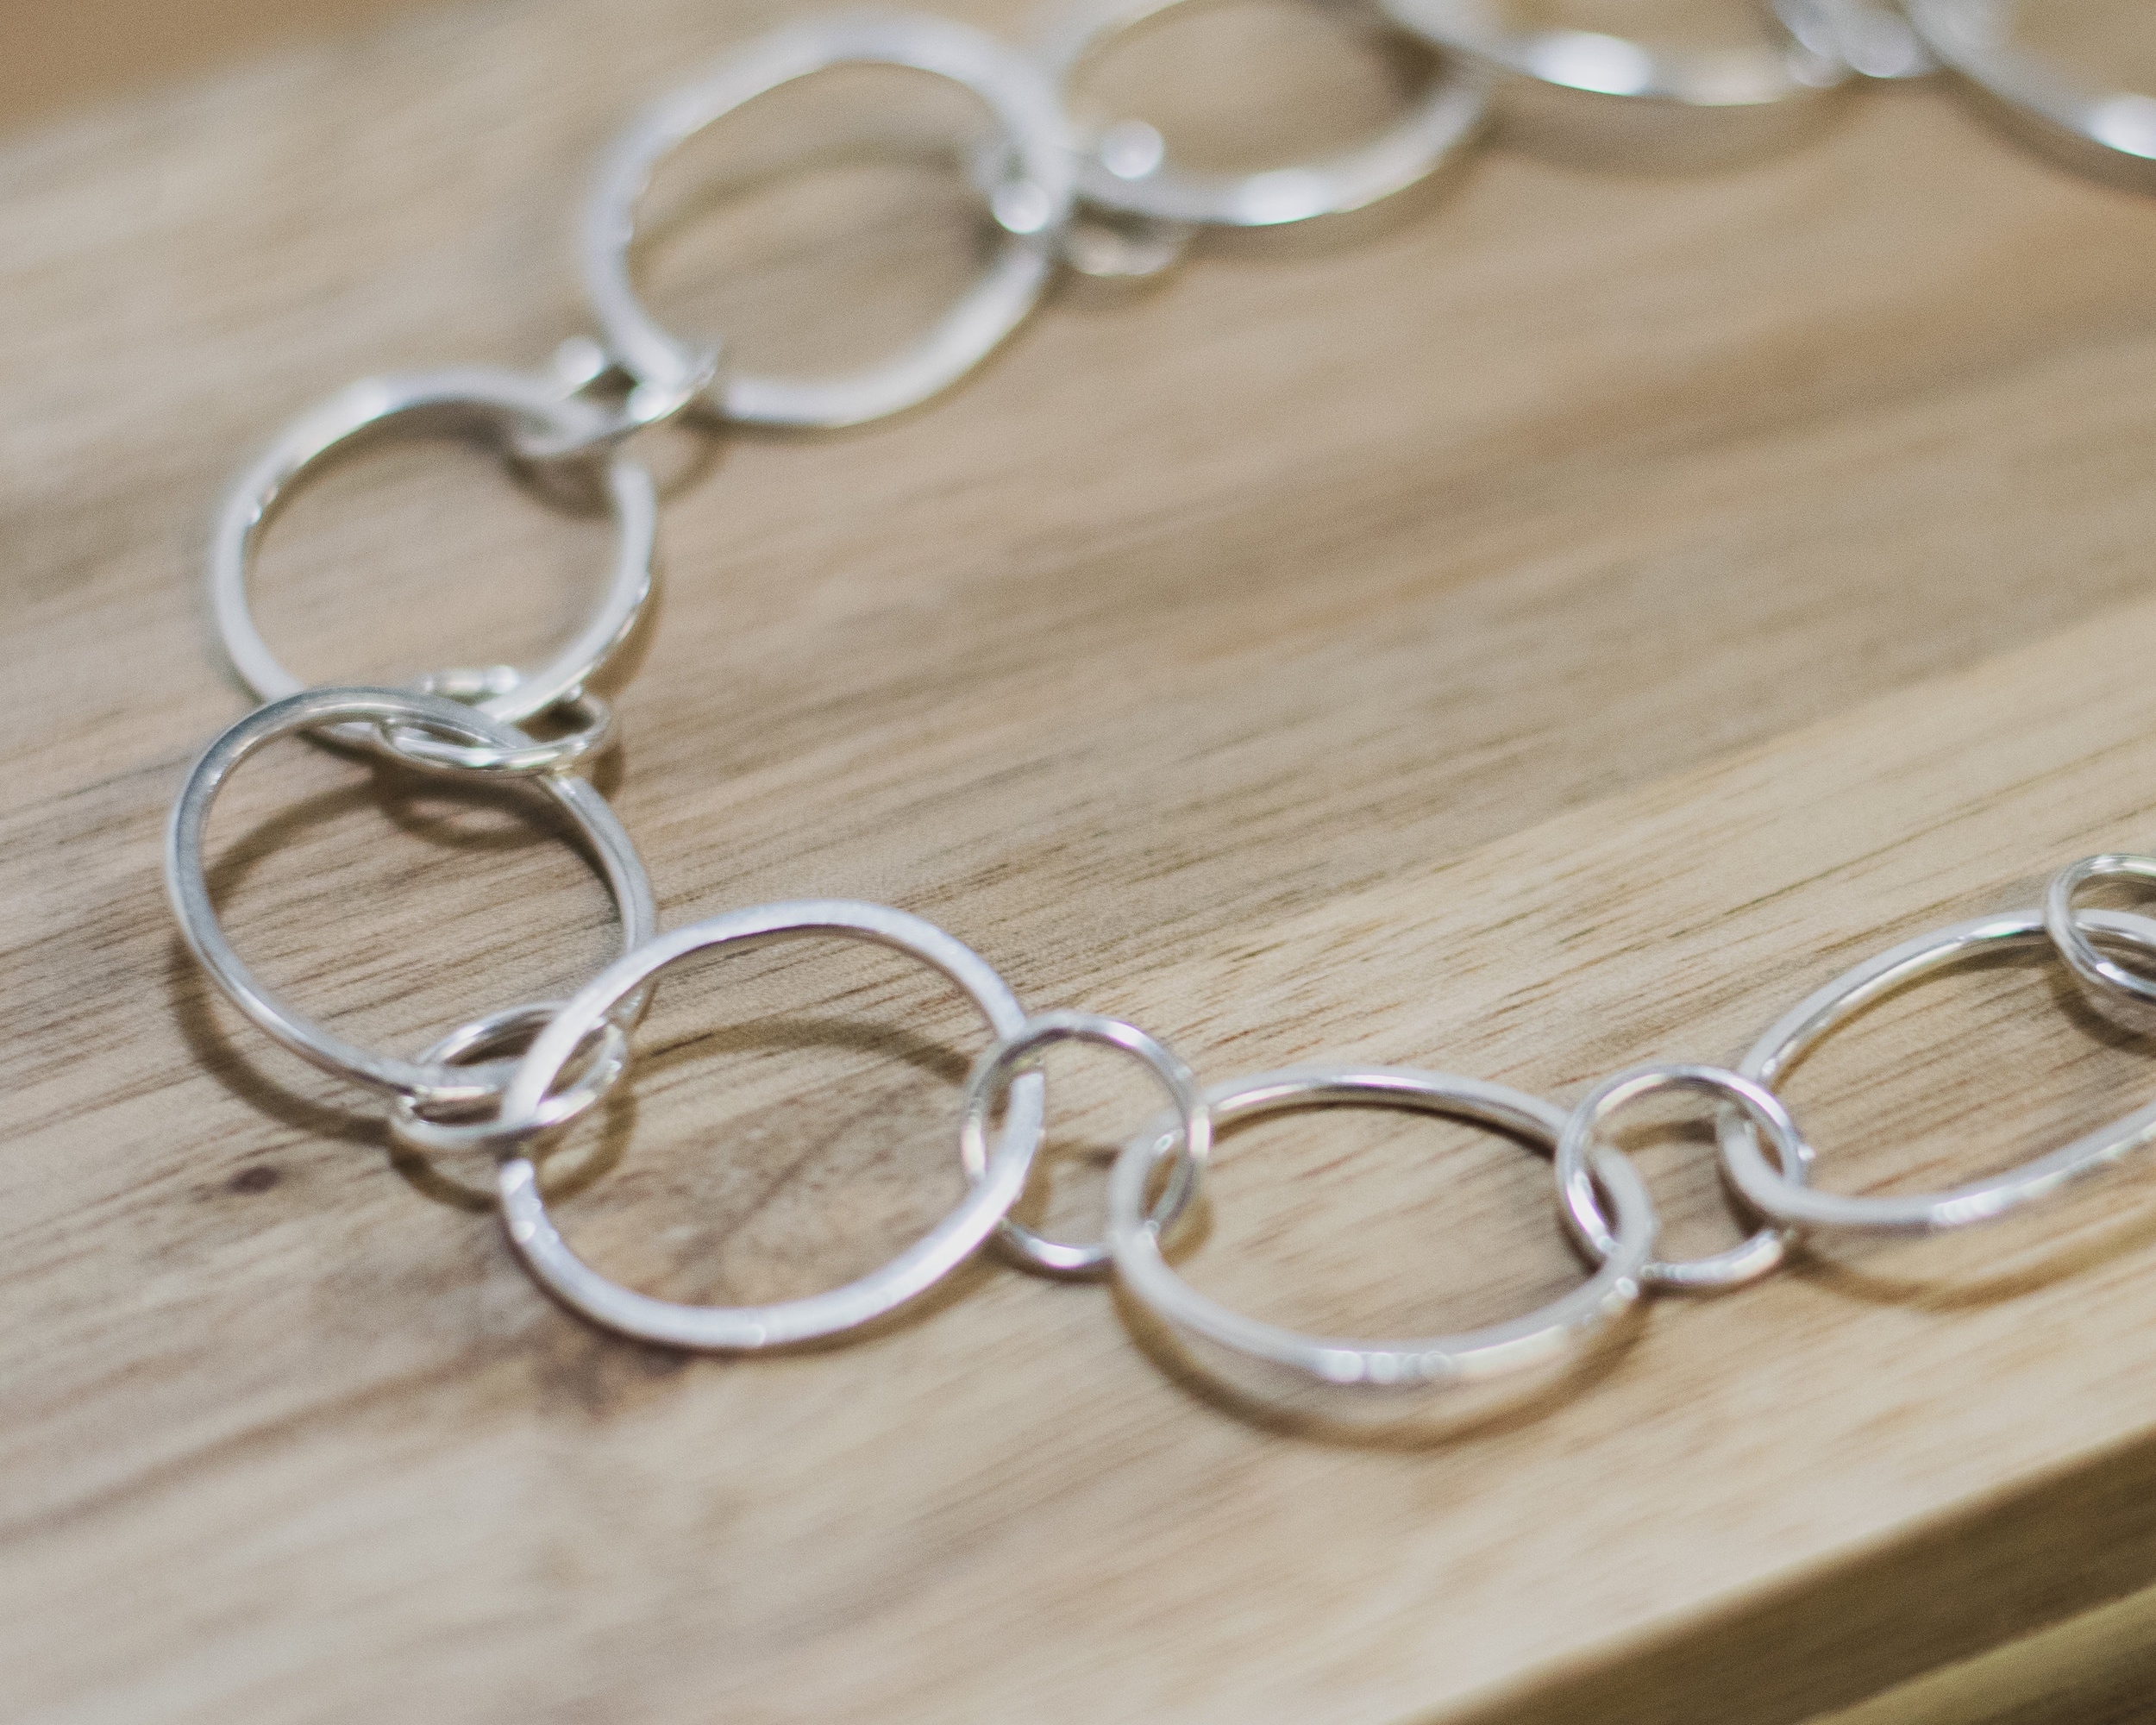 Week 5 - Chain making - This week you will begin by learning how to make jump rings of various sizes. This is a really instrumental skill to have as a jeweller as they can enhance your work in so many ways. During this session you will also get to grips with connecting the jump rings to make beautiful patterns from chain, and in turn exploring pattern and size to make sections of chain into your very own pieces of jewellery.